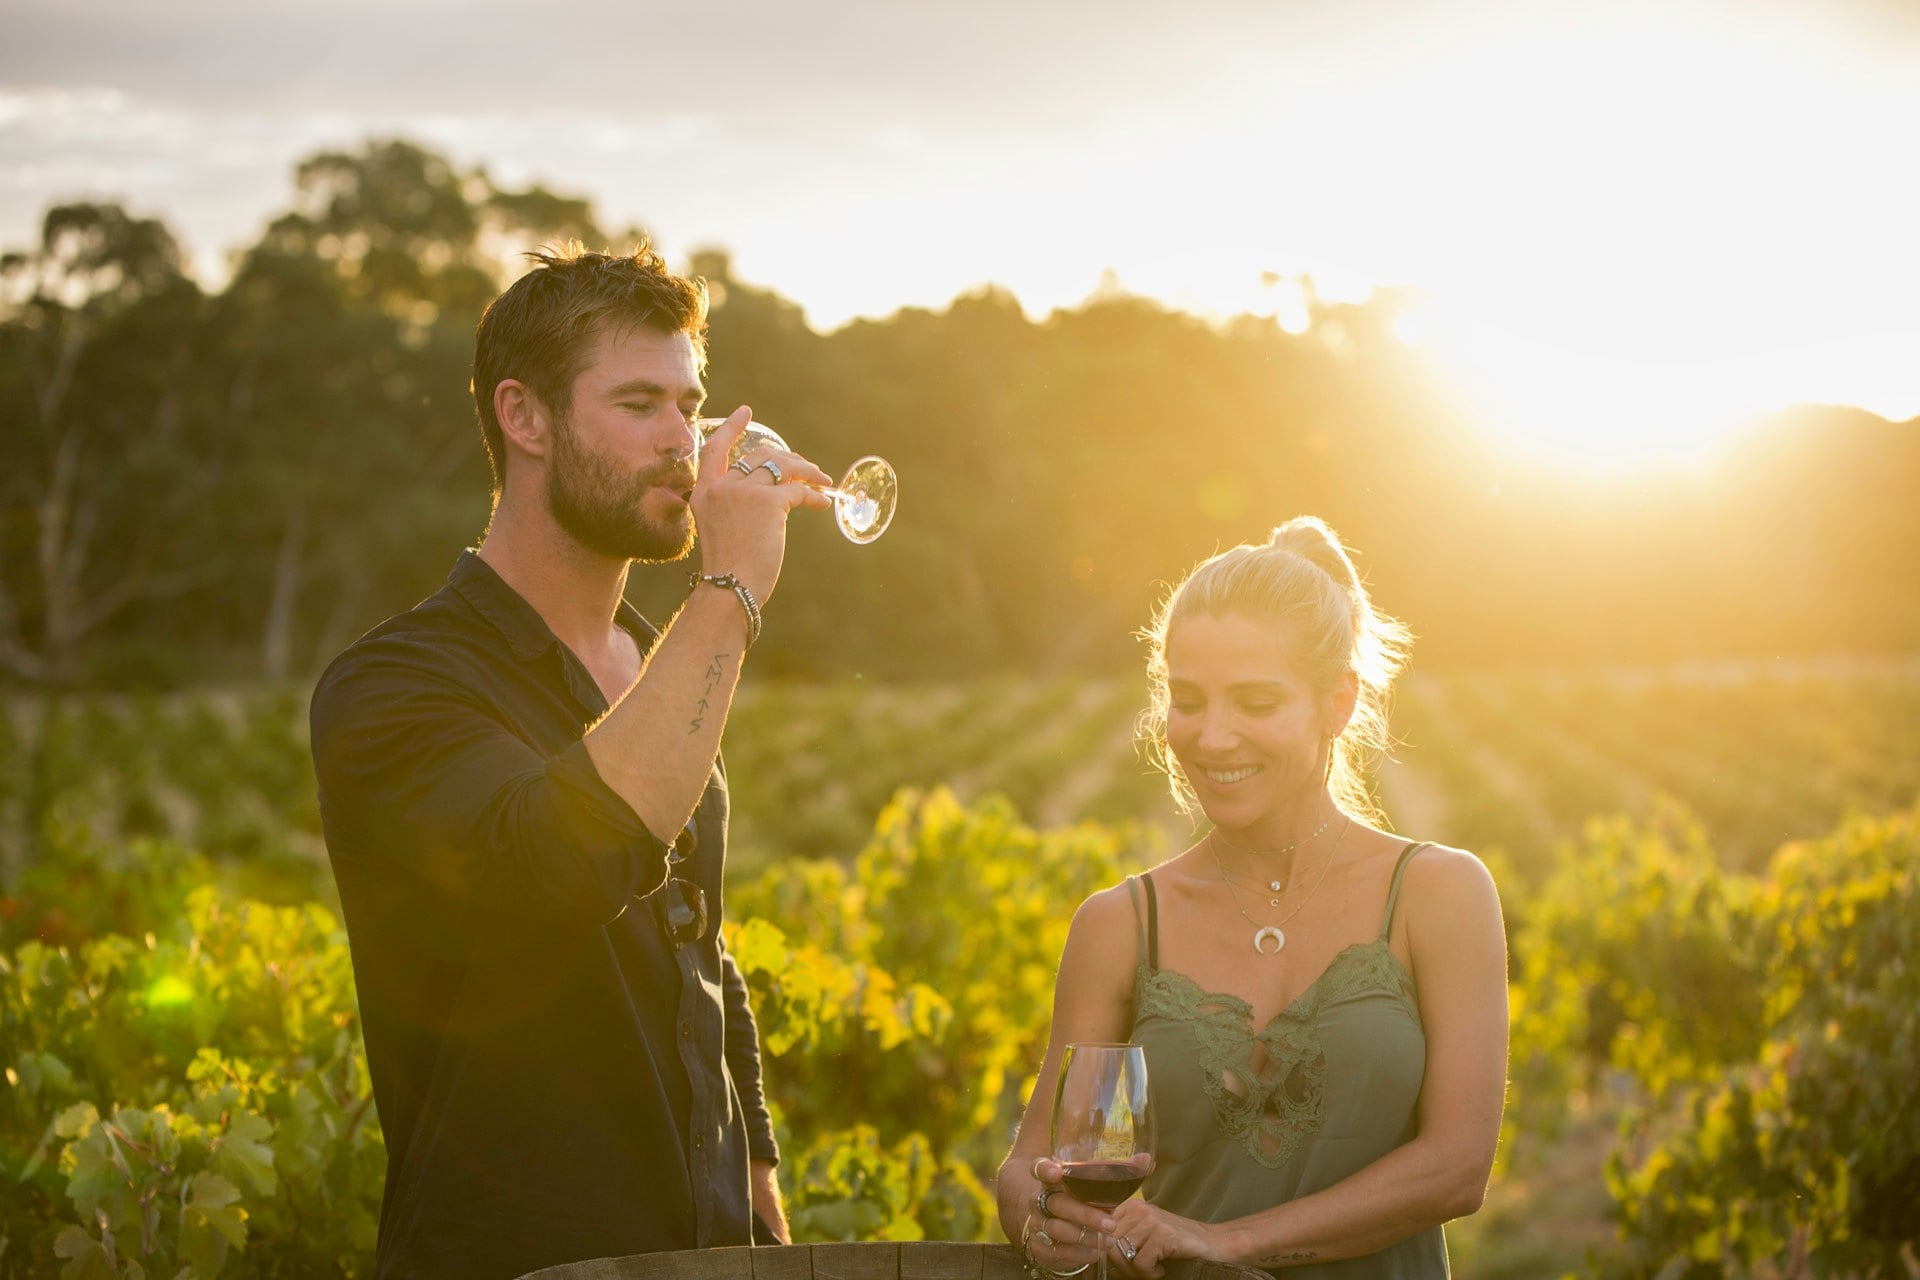 Chris Hemsworth and wife Elsa Pataky try winemaking